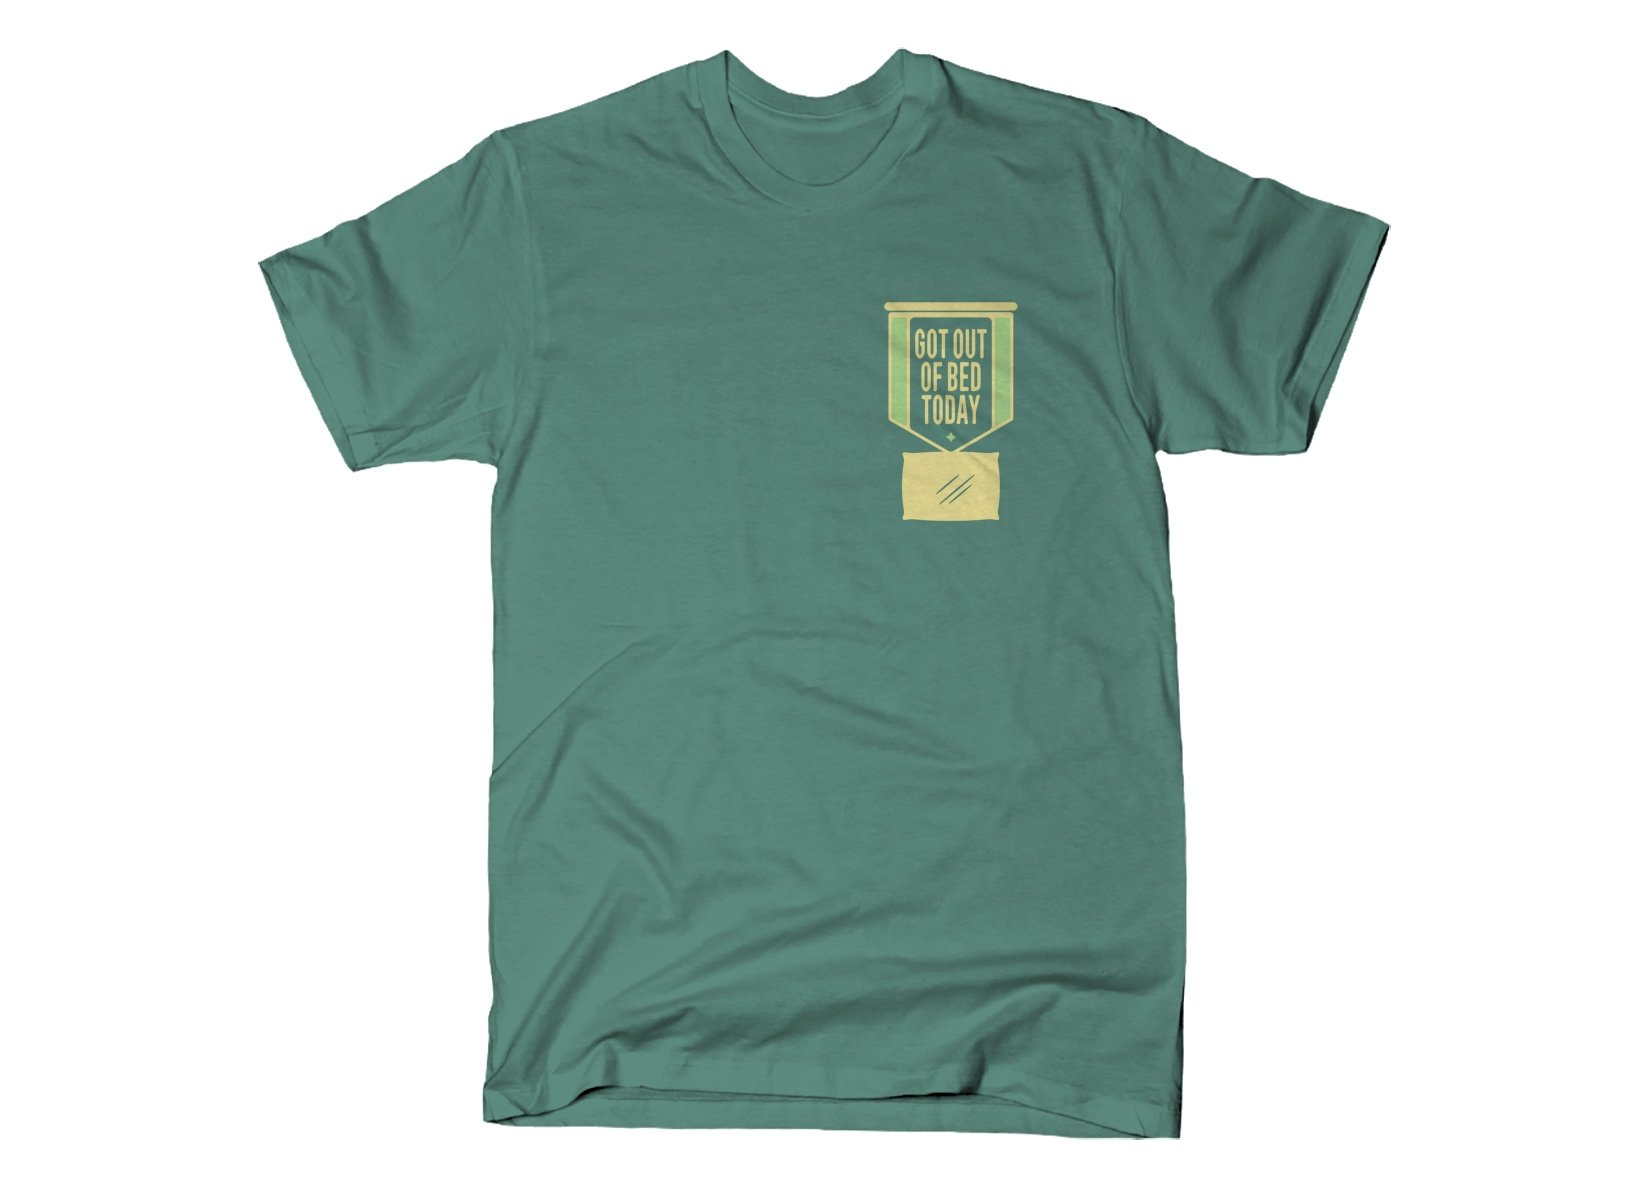 Got Out Of Bed Today on Mens T-Shirt